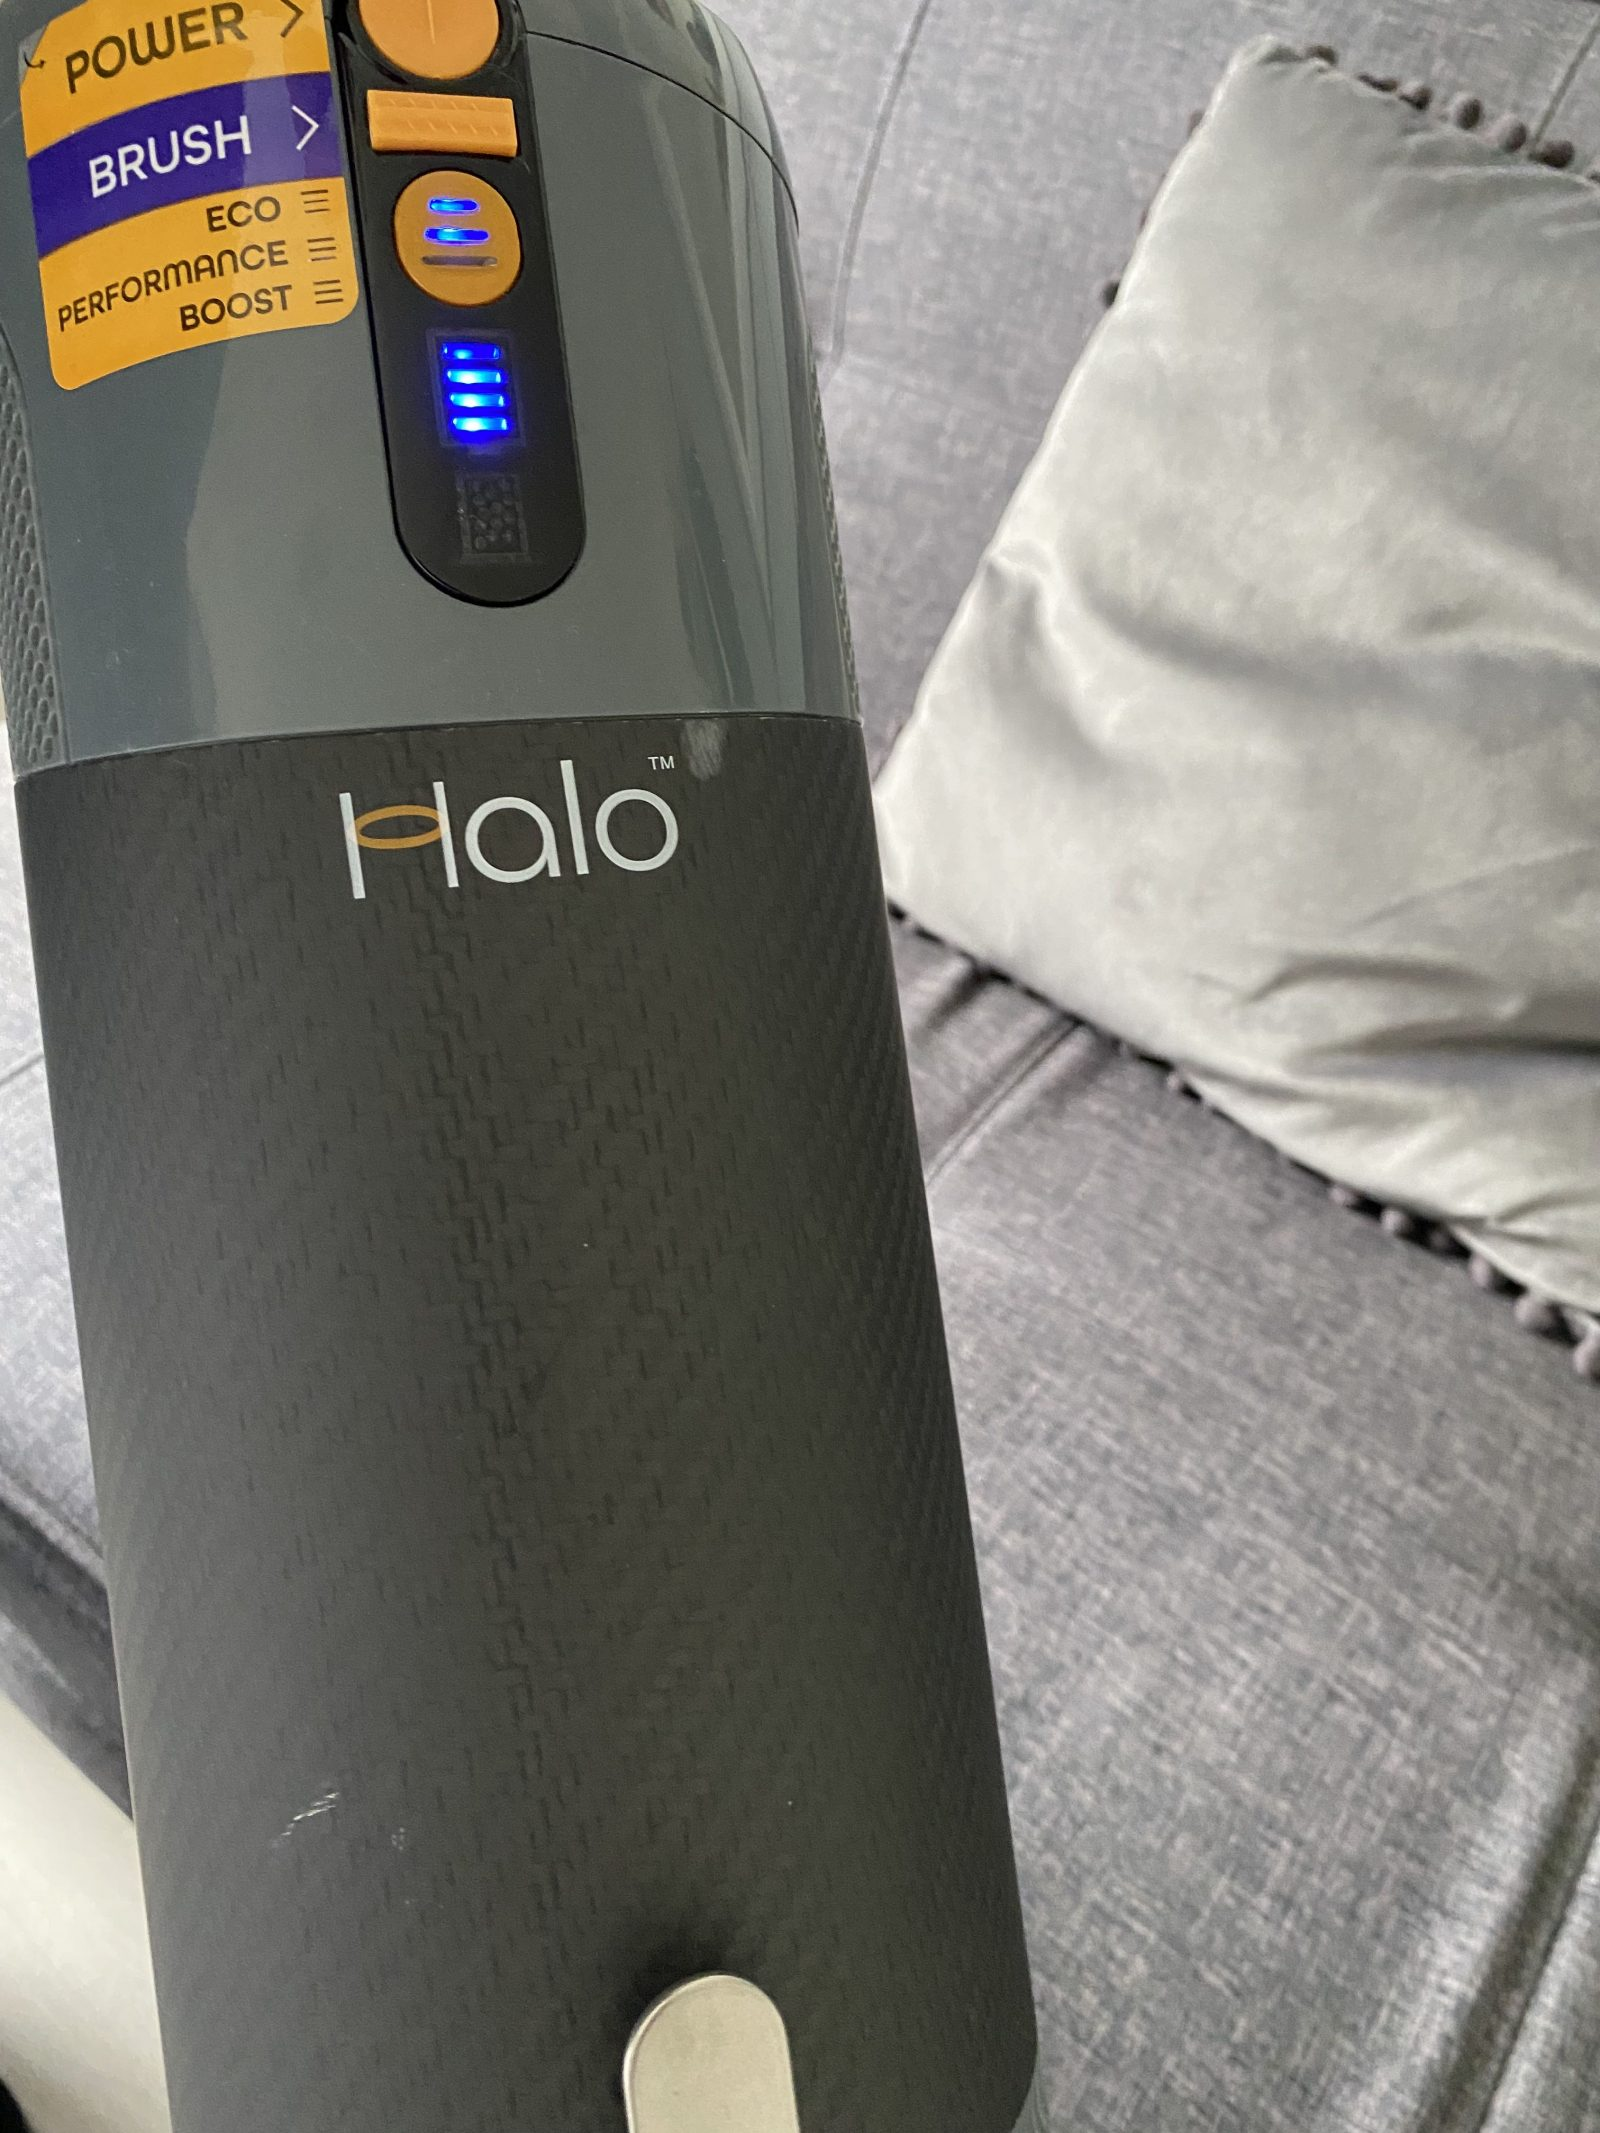 5 Vacuum Cleaners Aimed At Families Reviewed, IMG 4590 1600x2133%, daily-dad%